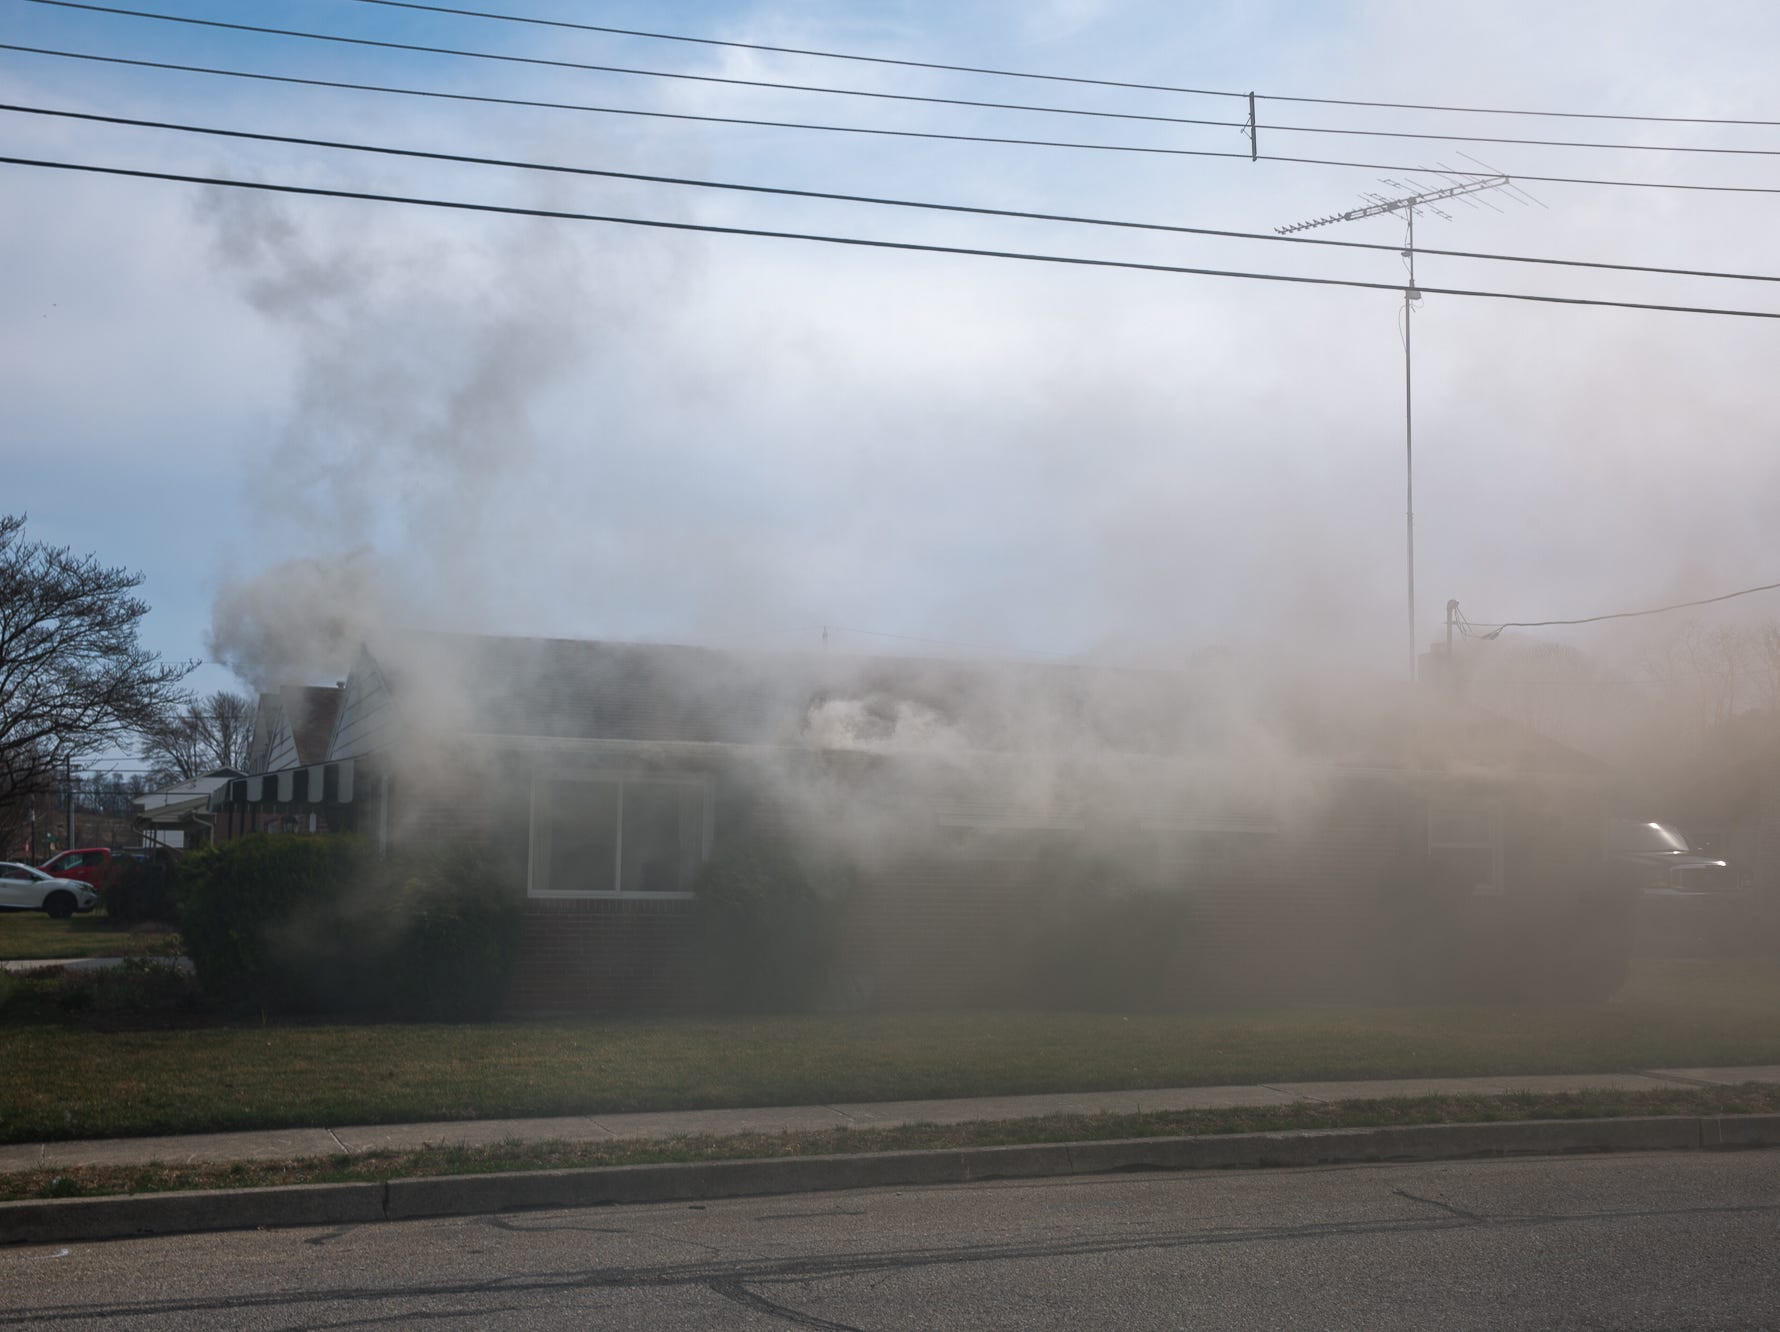 Smoke fills the air as a house burns on the 100 block of Mumma Ave., Saturday, March 30, 2019, in Penn Township. No one was injured in the fire, which appears to have been an accidental fire in the kitchen, said Hanover Area Fire & Rescue Chief Tony Clousher.